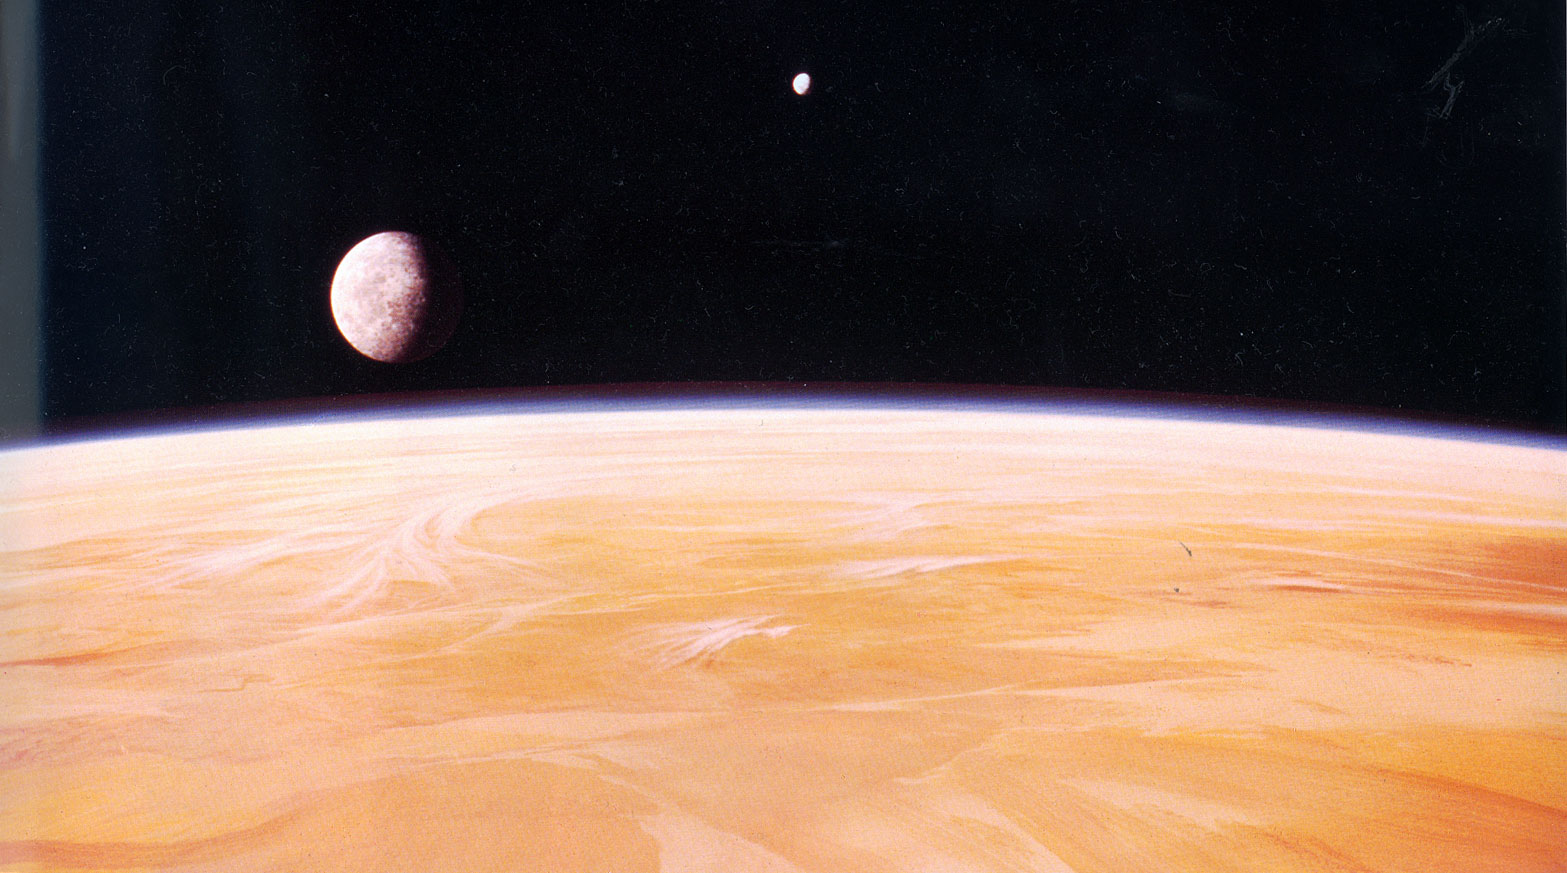 planets and moons in star wars - photo #28